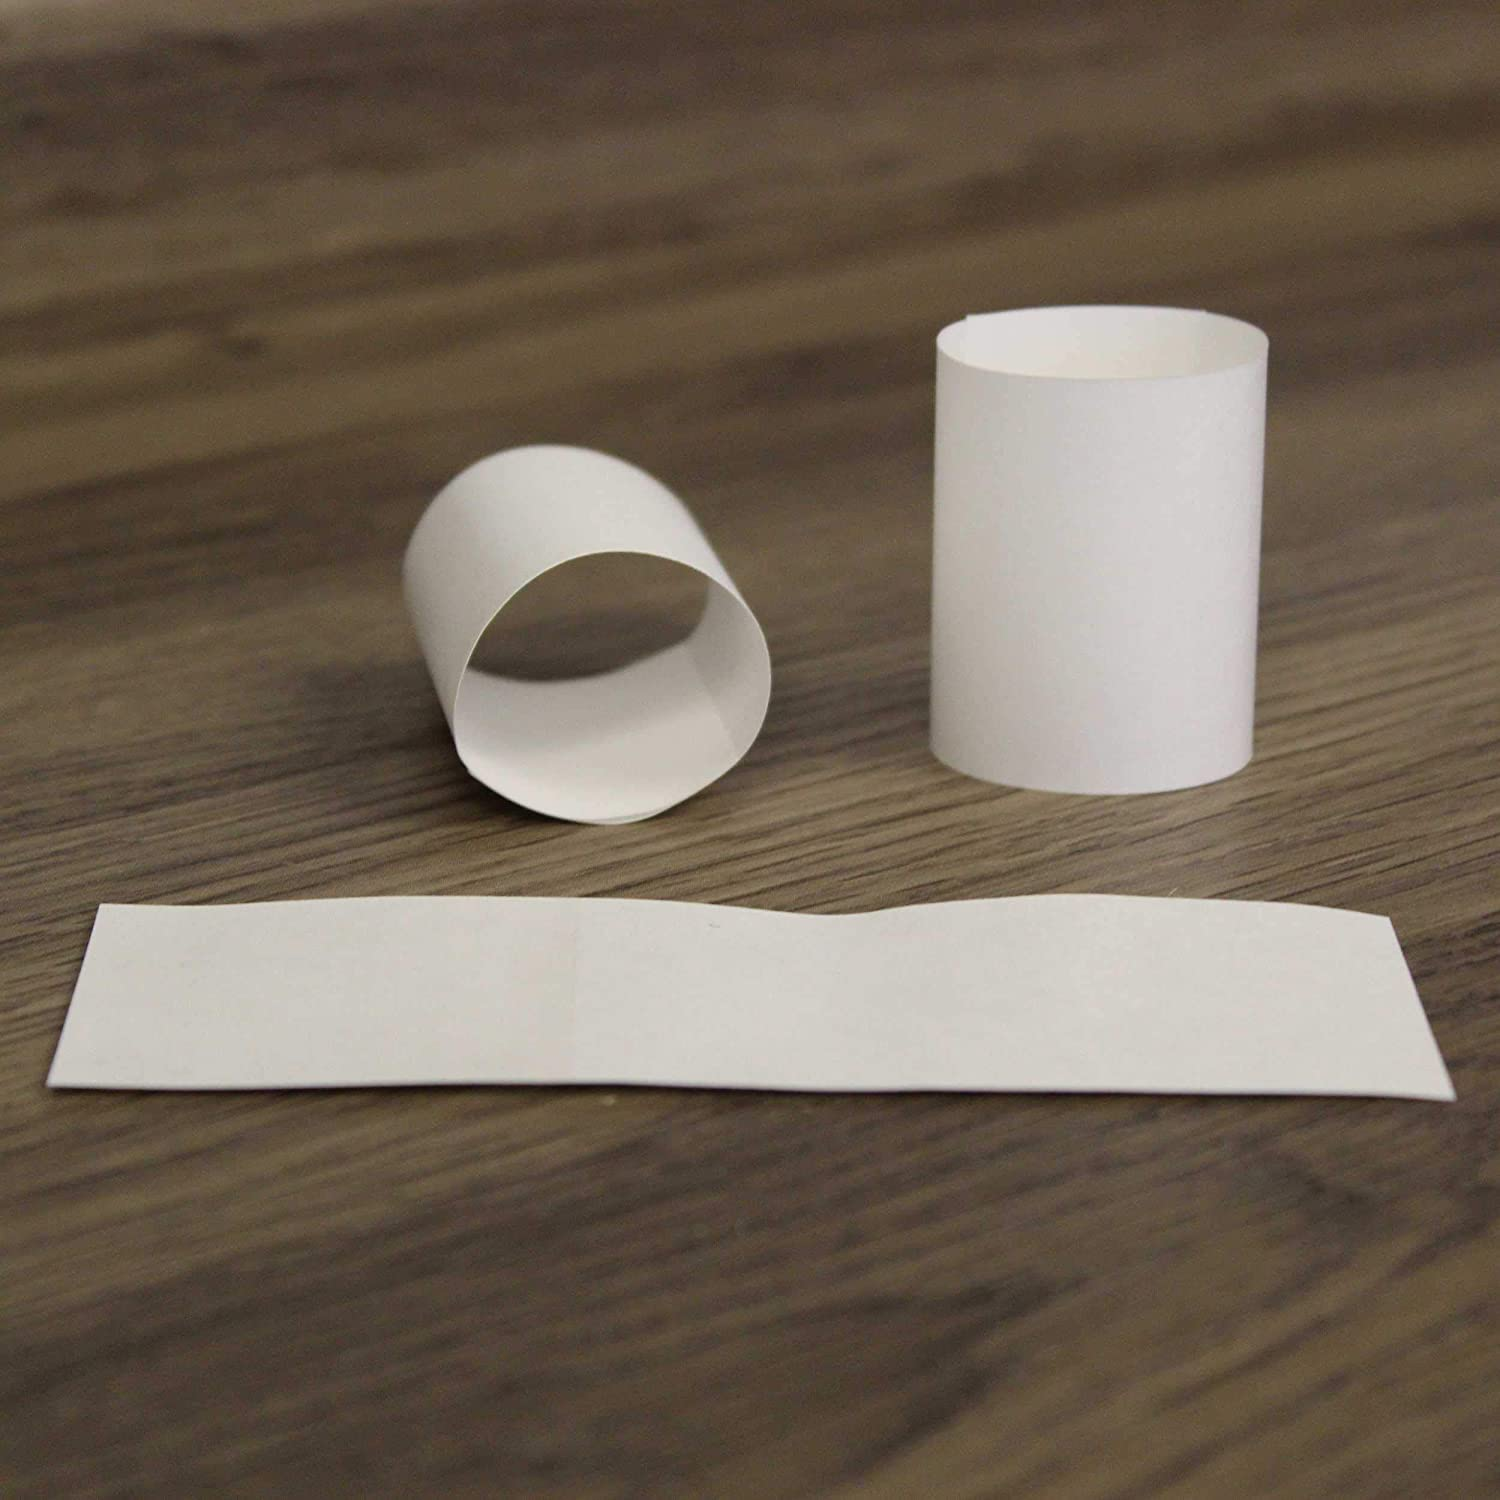 RayLynn Products, Pack of 20,000 White Premium Napkin Bands, Self-Adhesive 1.5